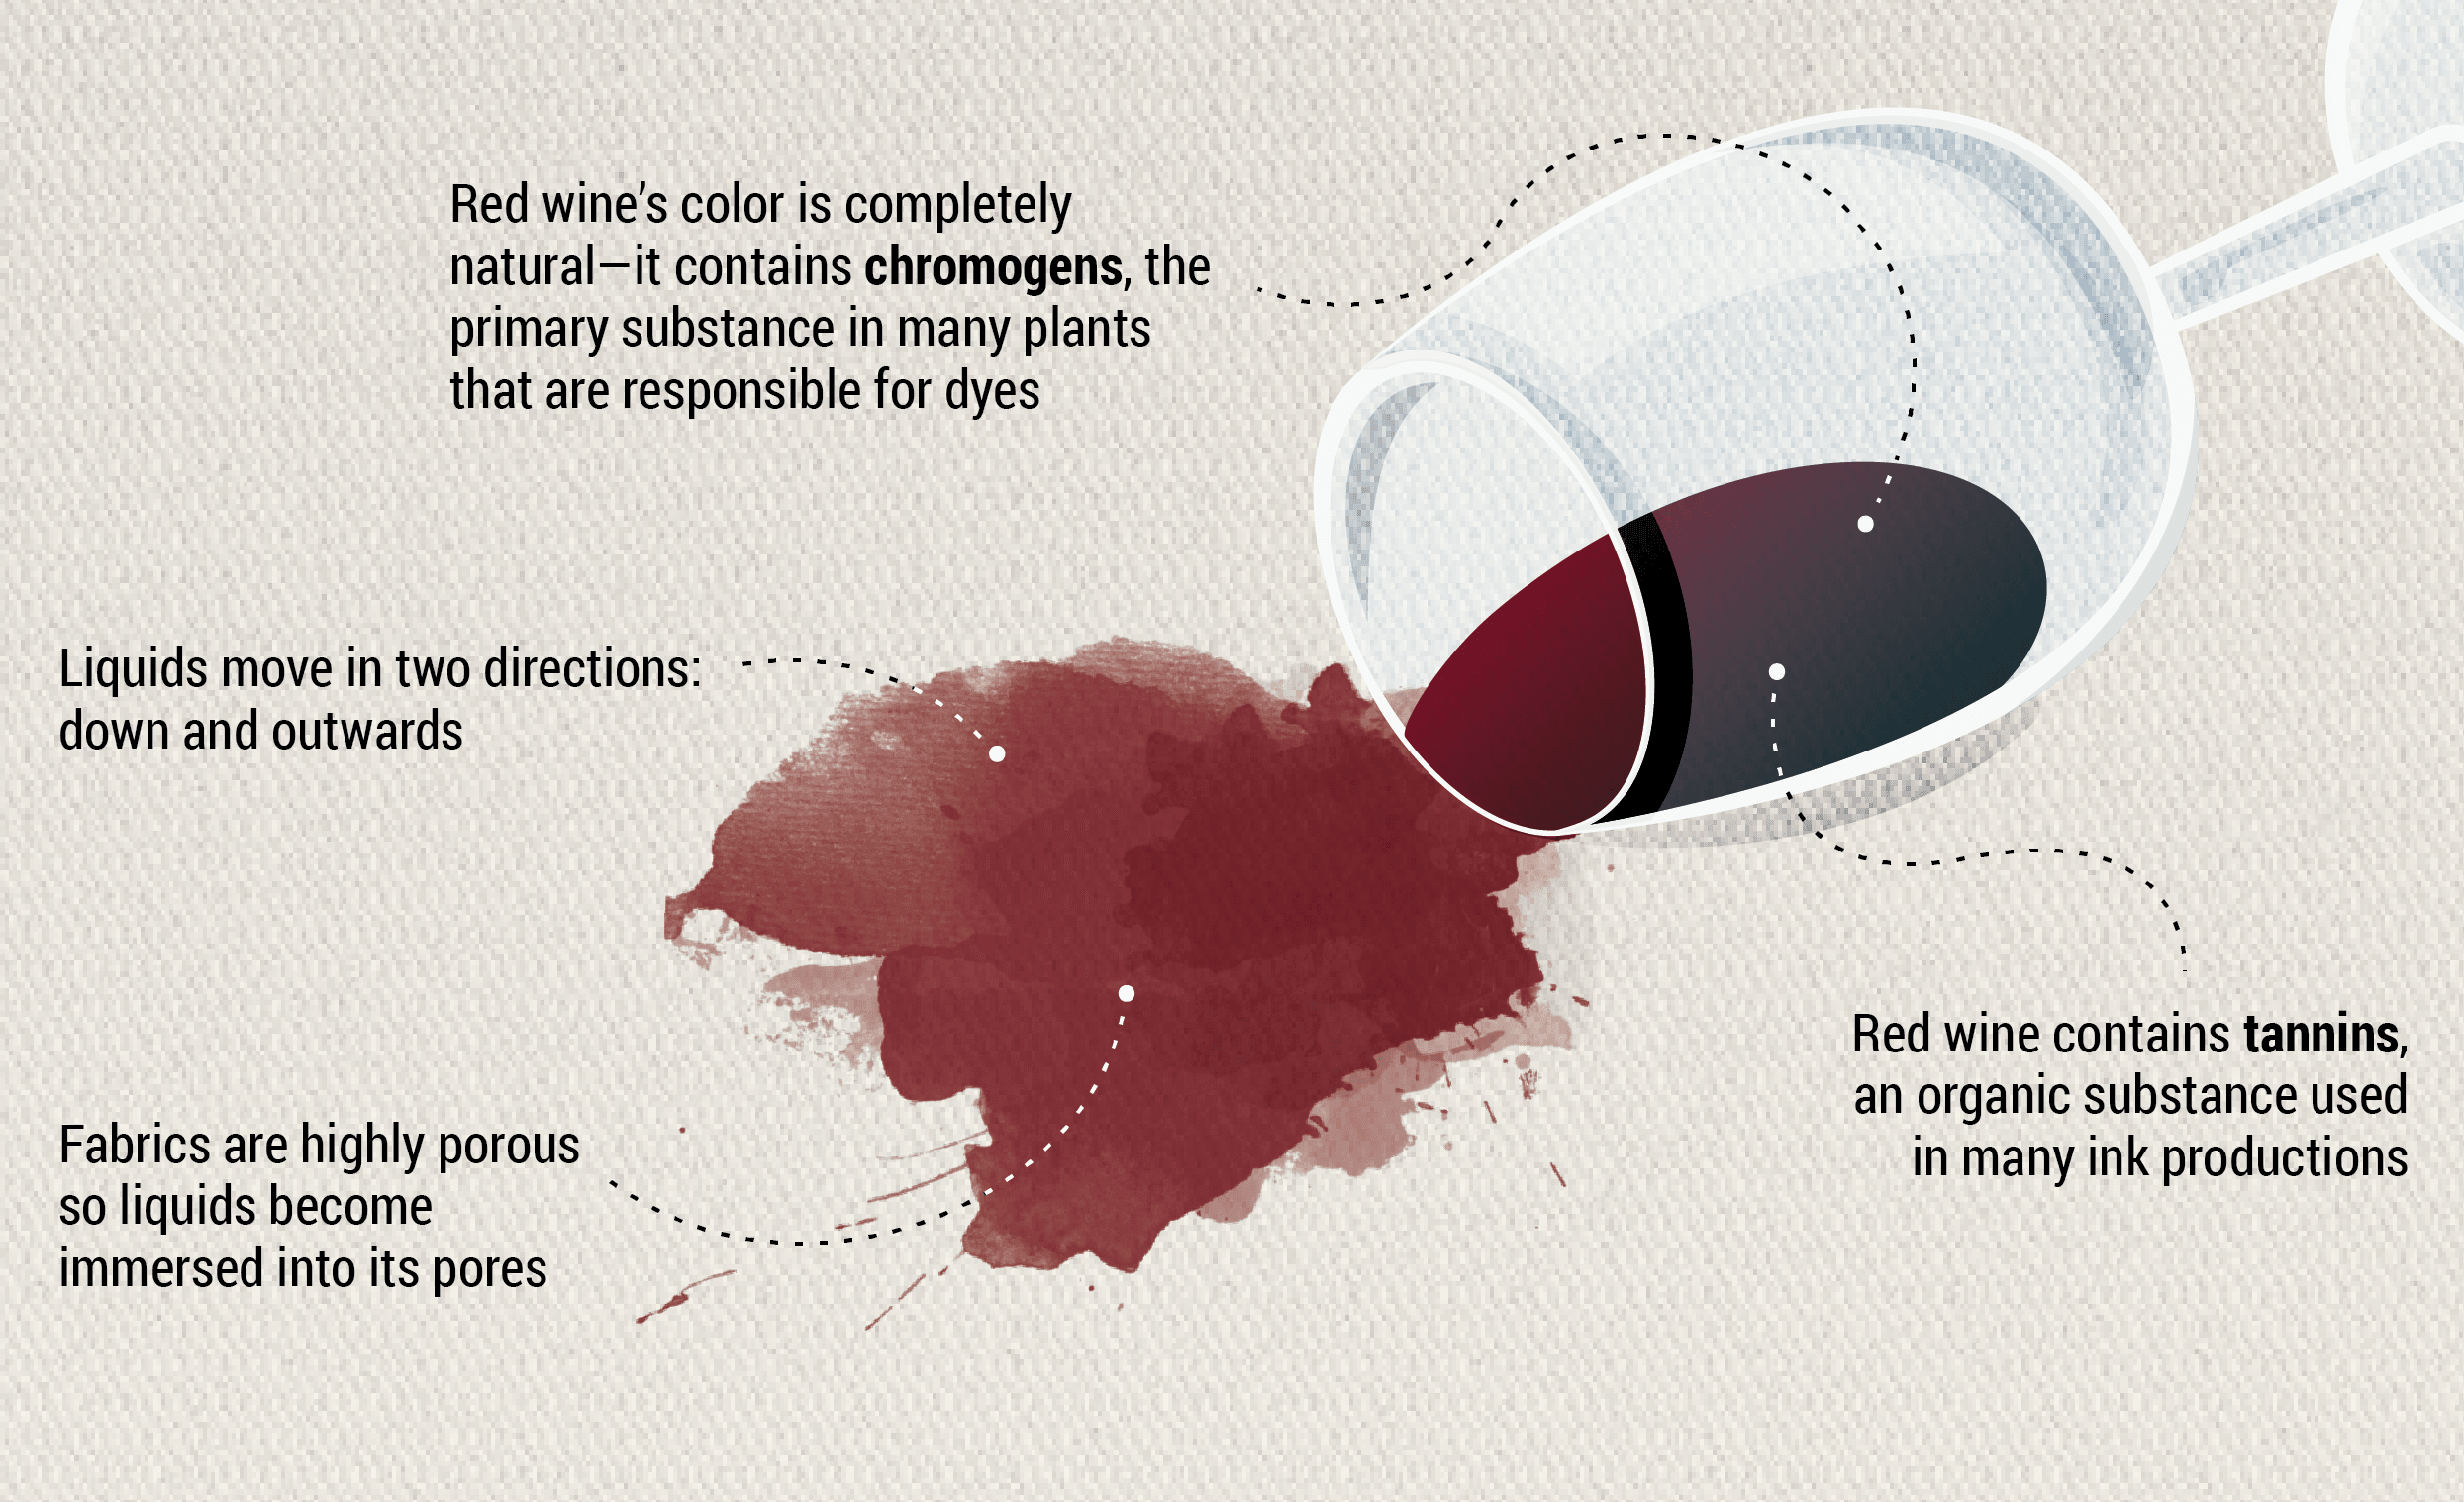 Anatomy Of Red Wine